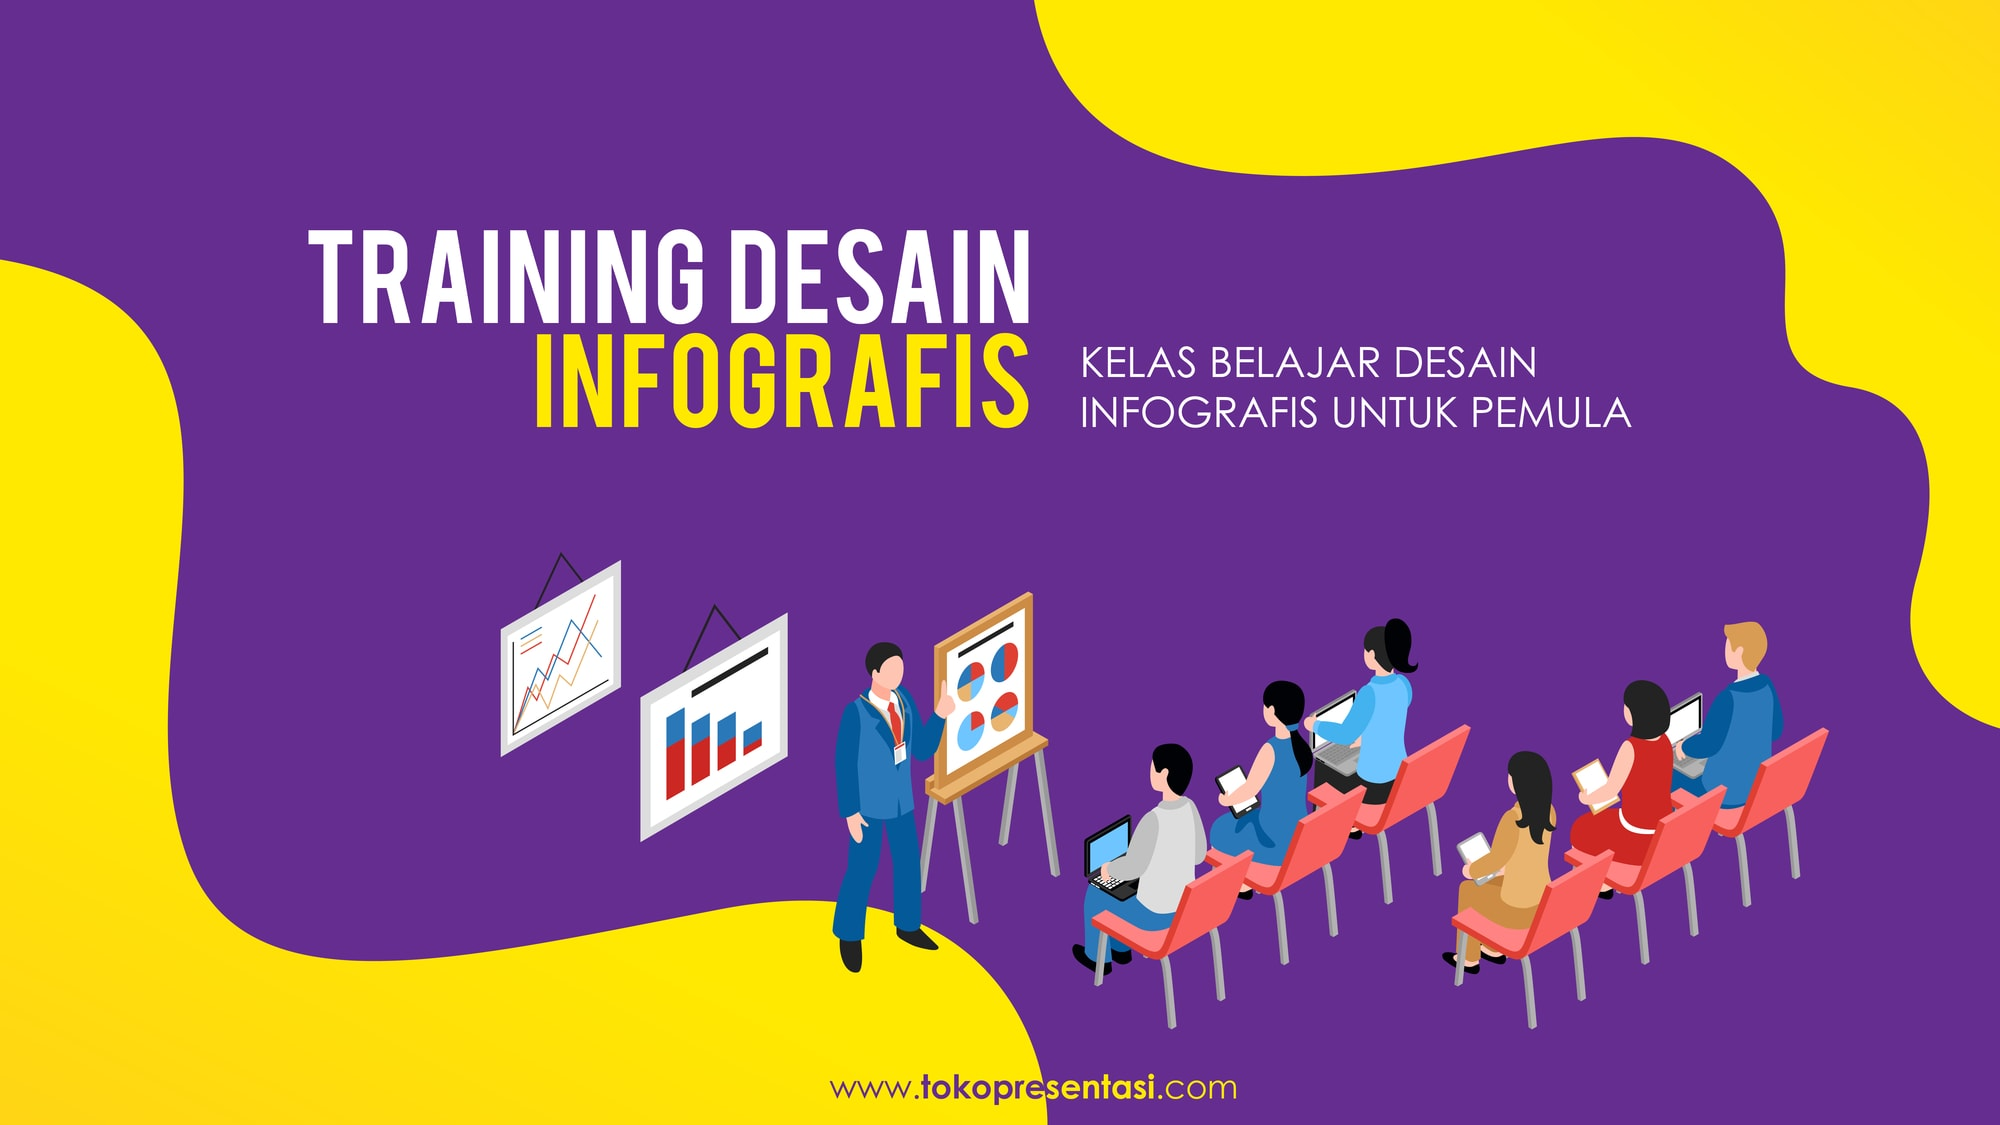 Pelatihan Training Desain Infografis PPT Pertamina Corporate University Tokopresentasi